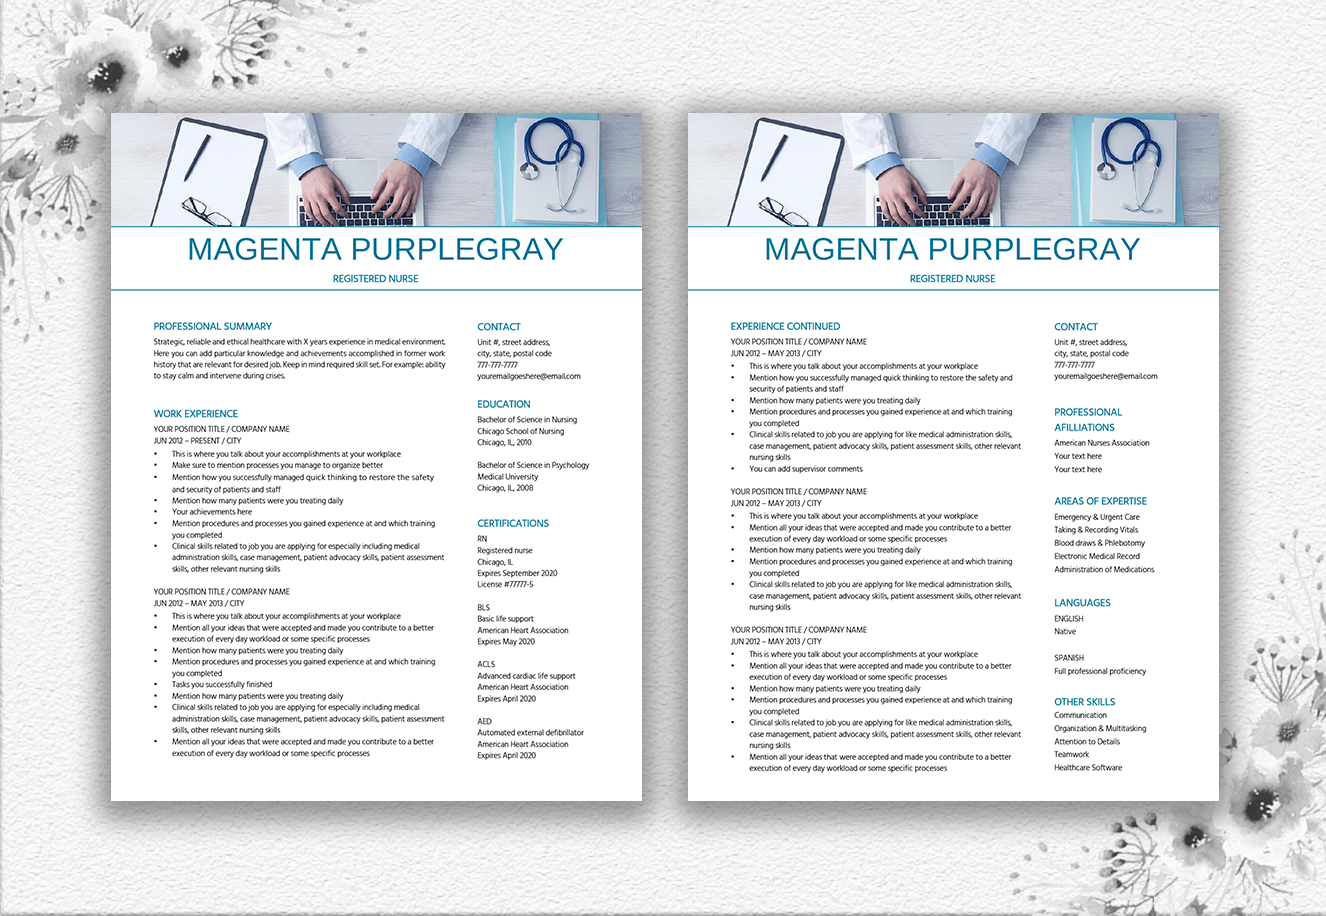 Medical Resume Template example image 2